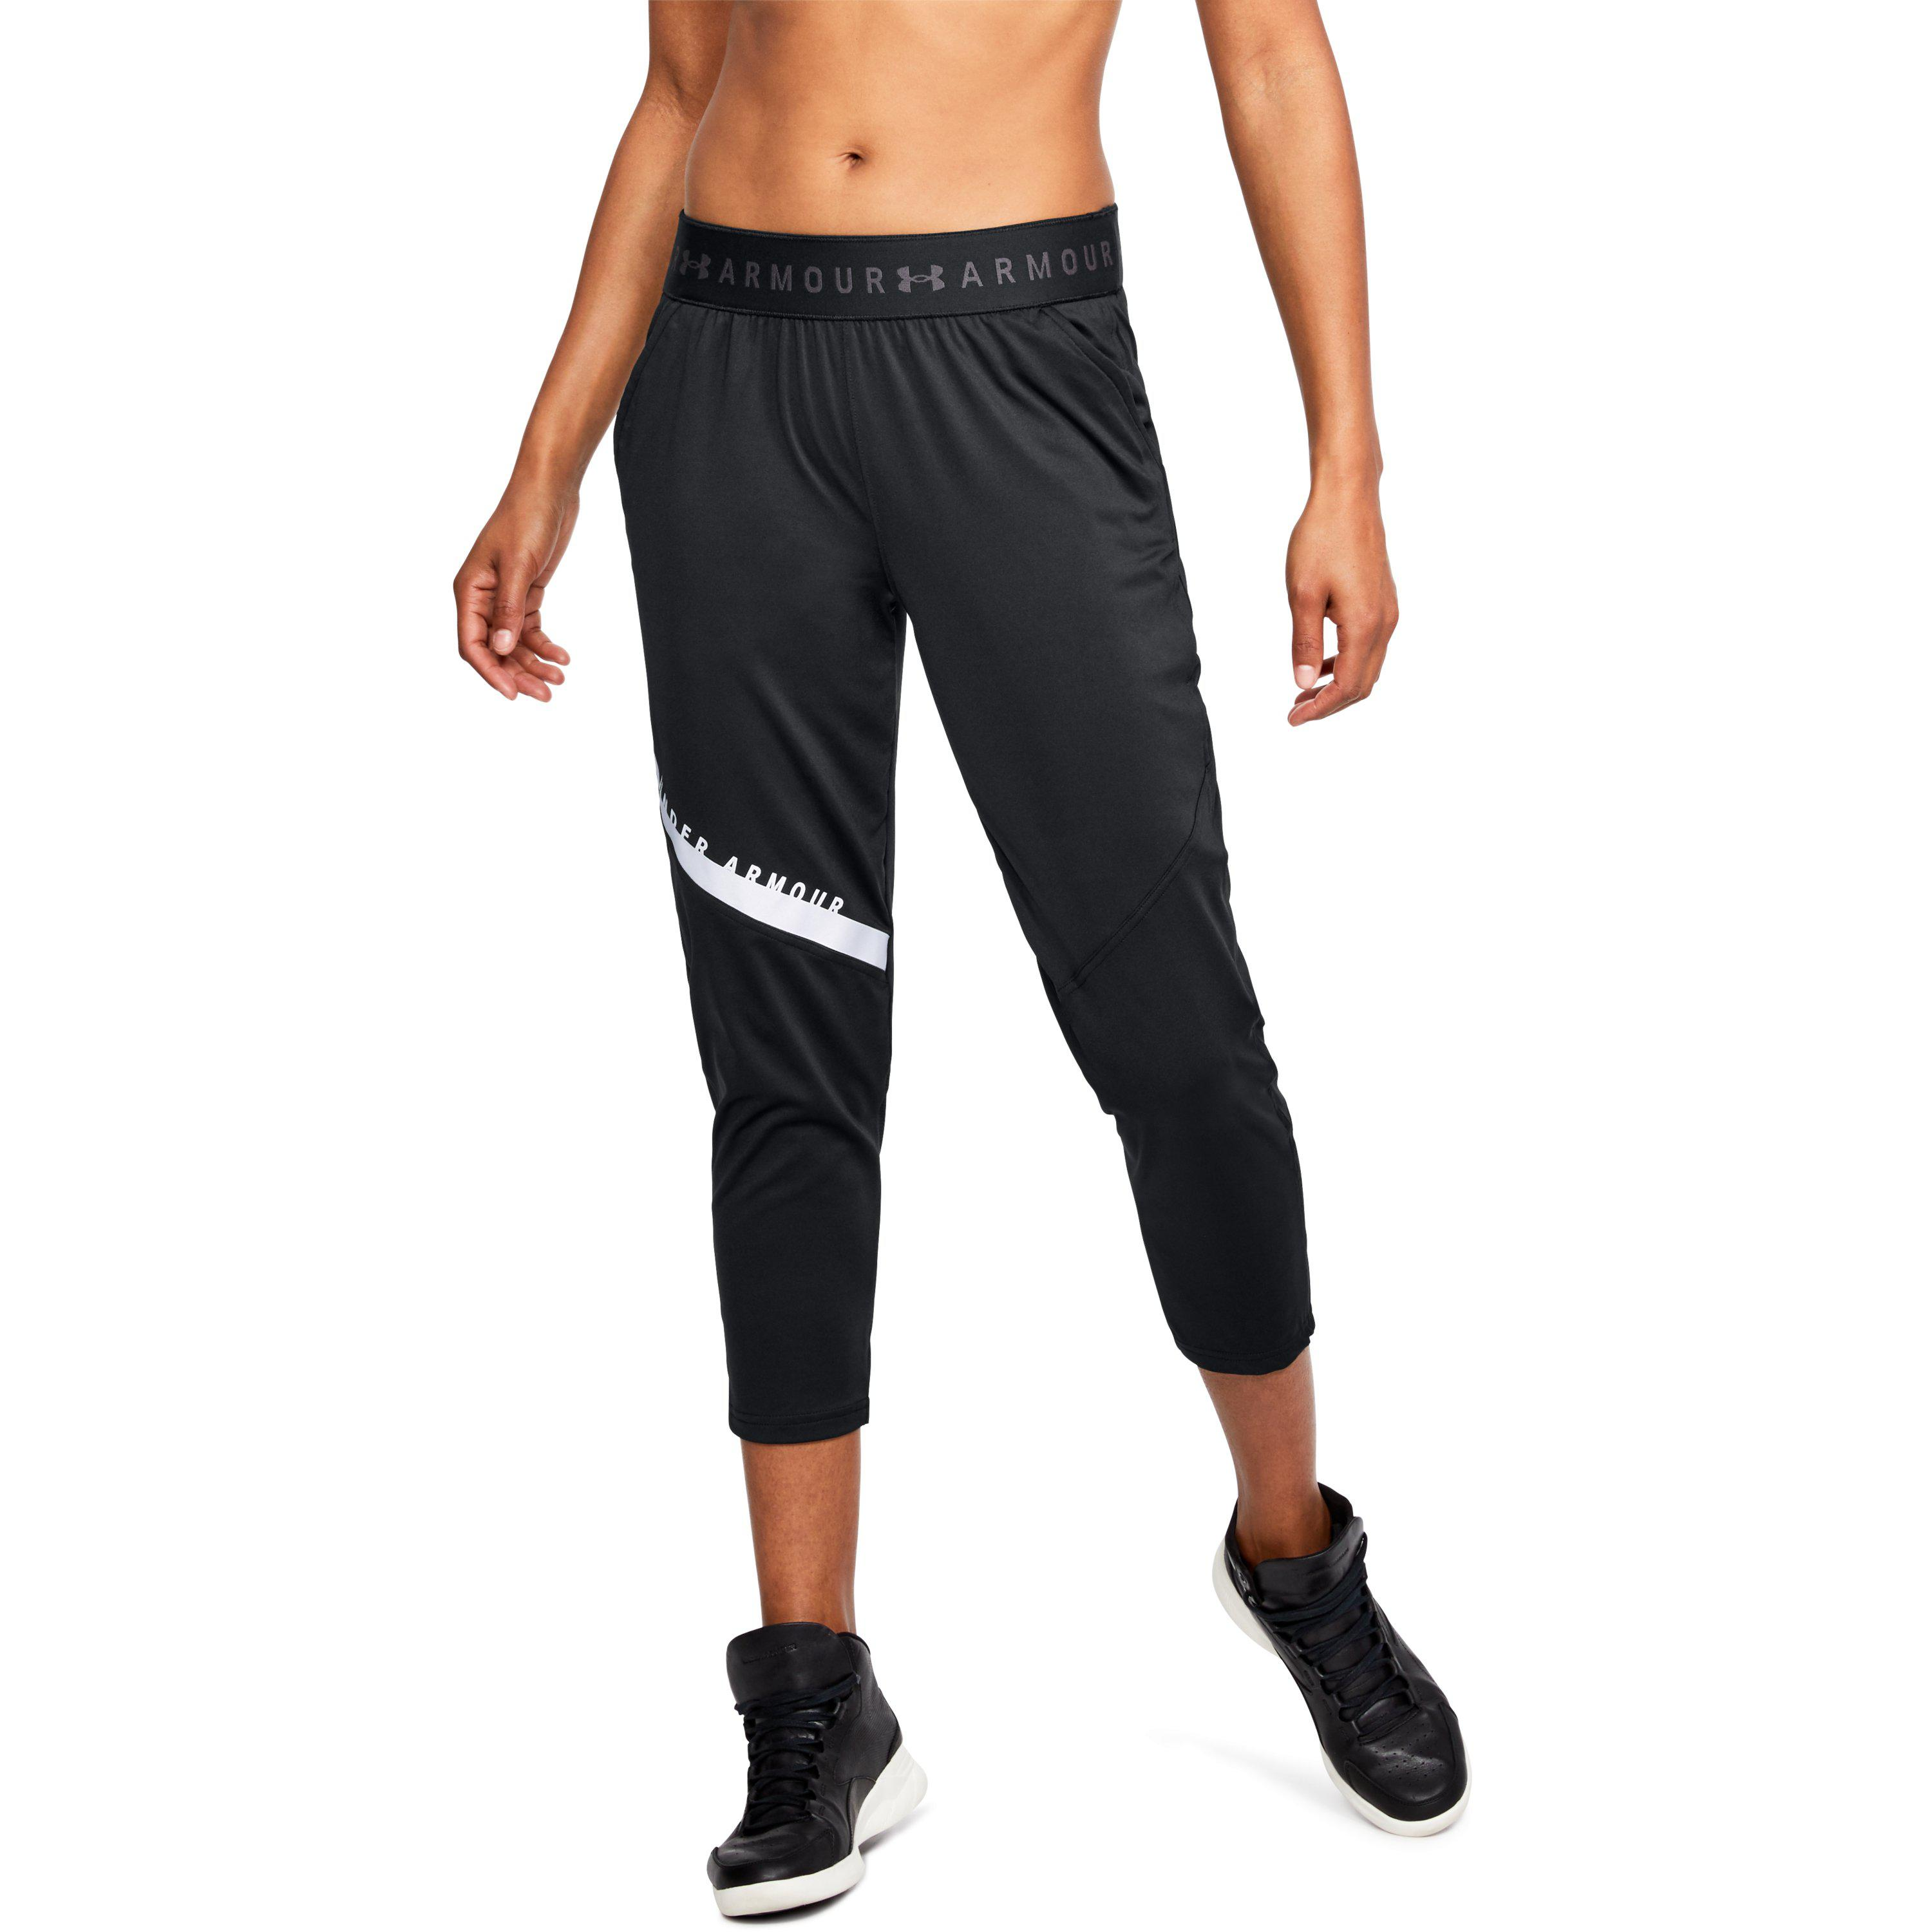 16075a75343972 Under Armour Women's Ua Armour Sport Graphic Crop in Black - Lyst